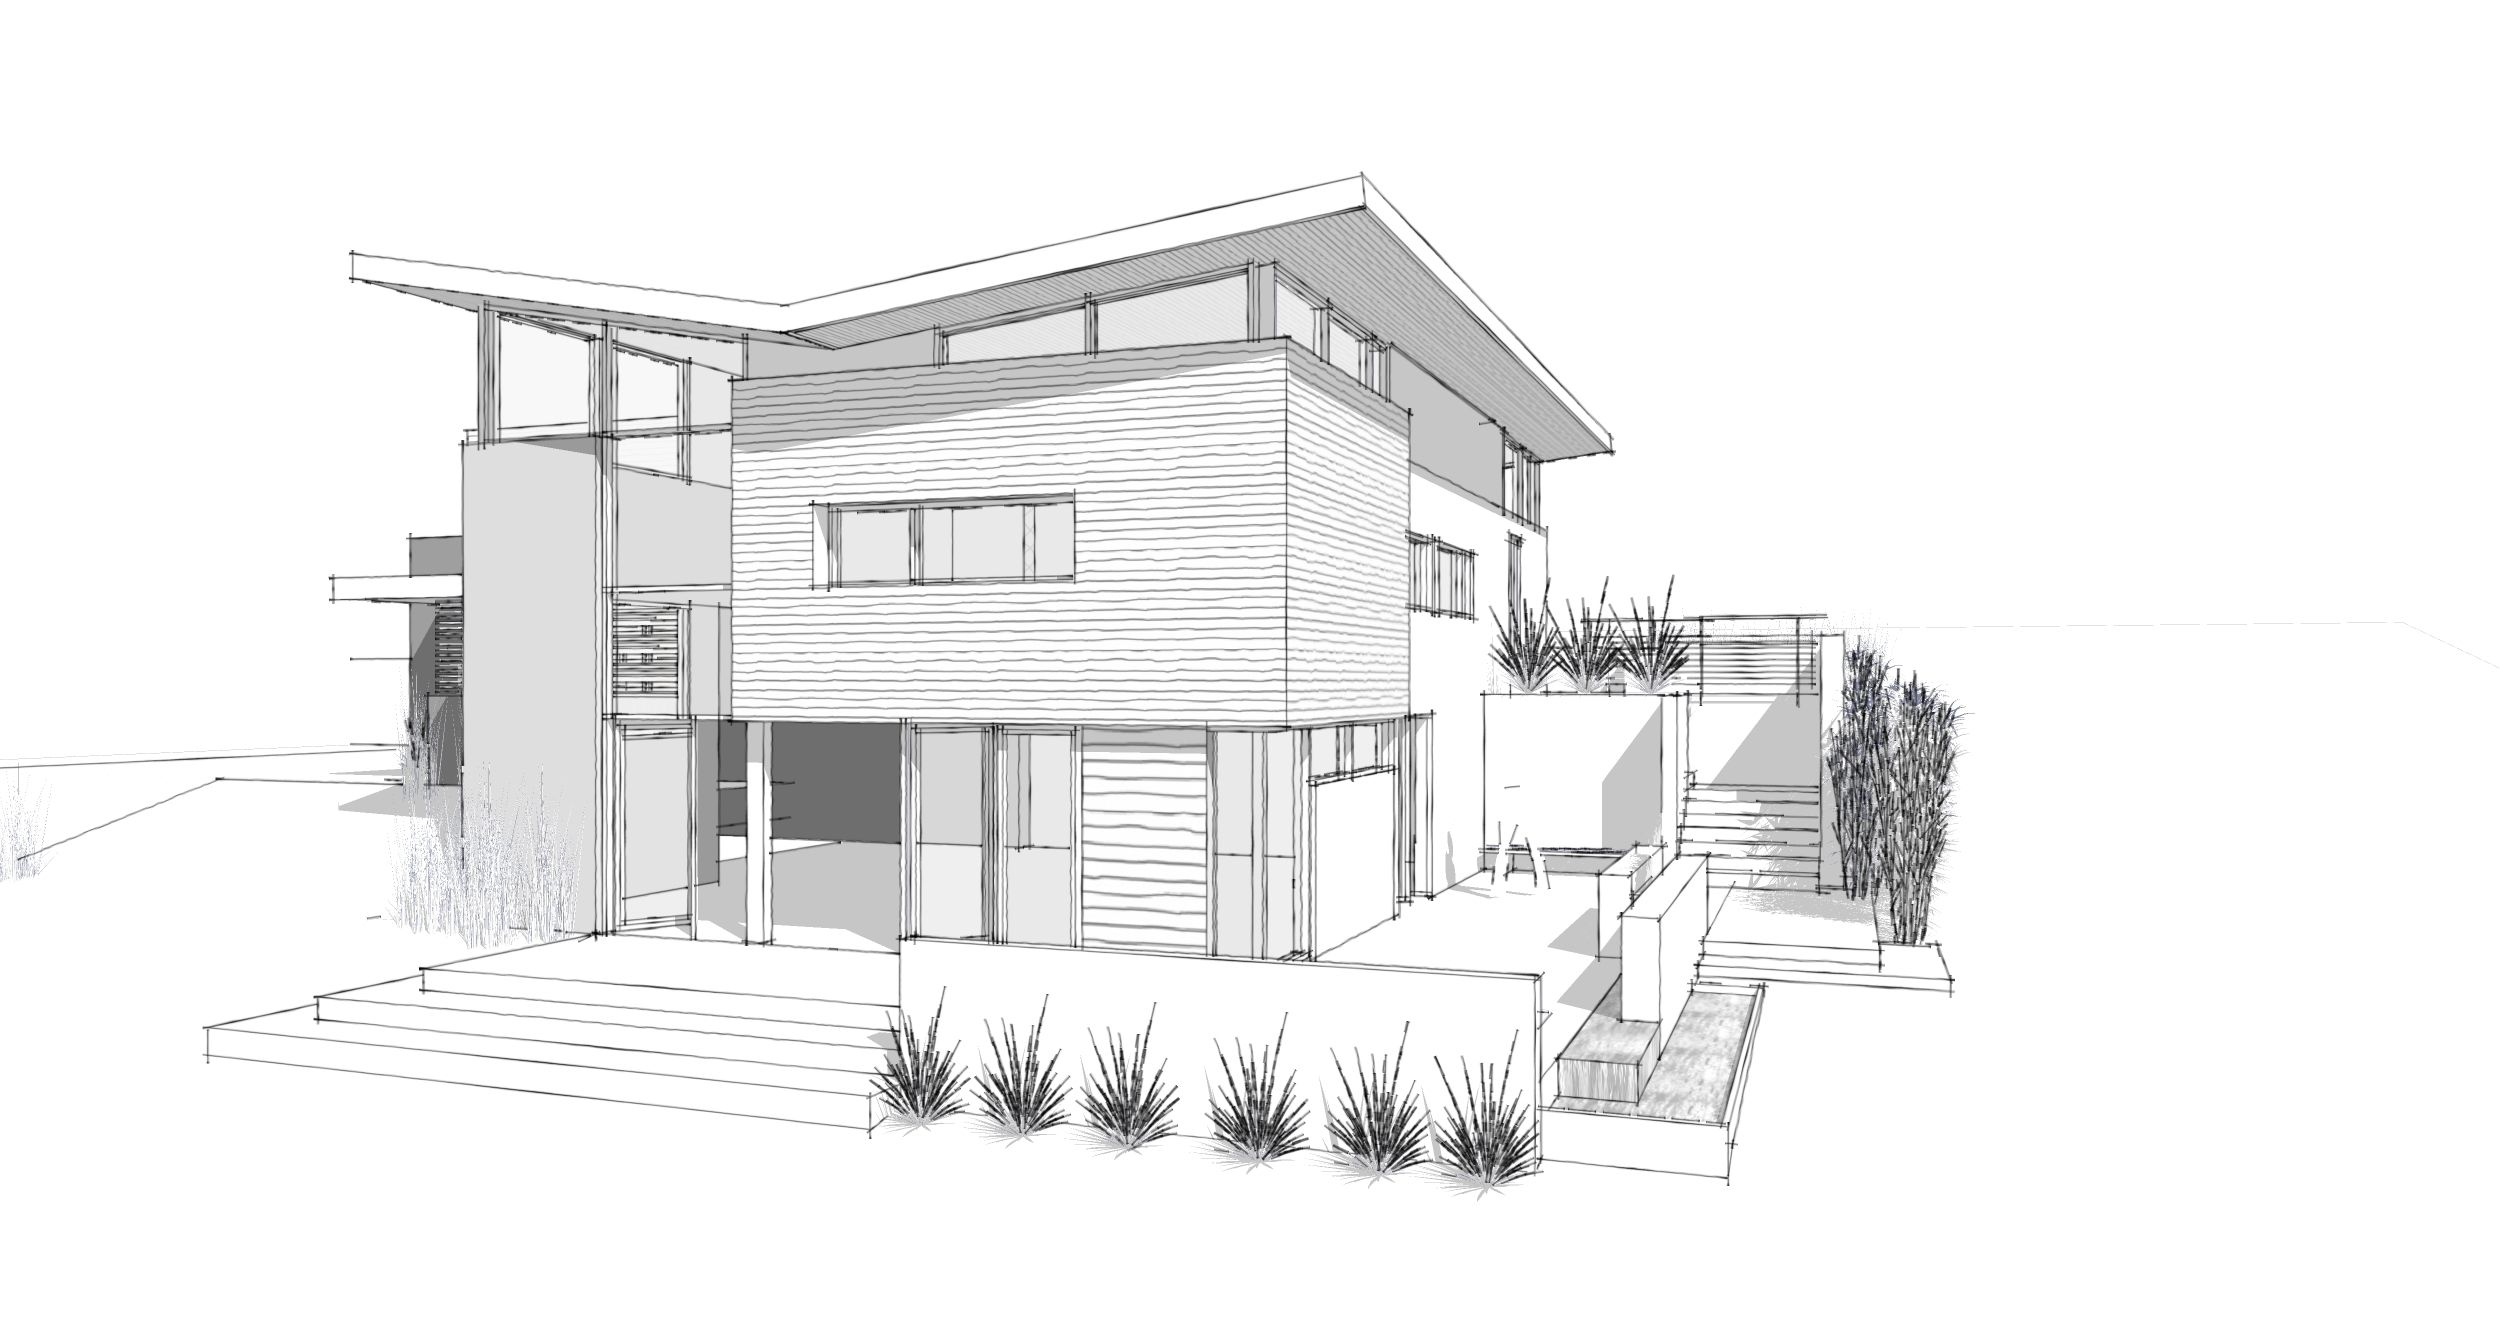 Modern home architecture sketches design ideas 13435 for Architecture simple